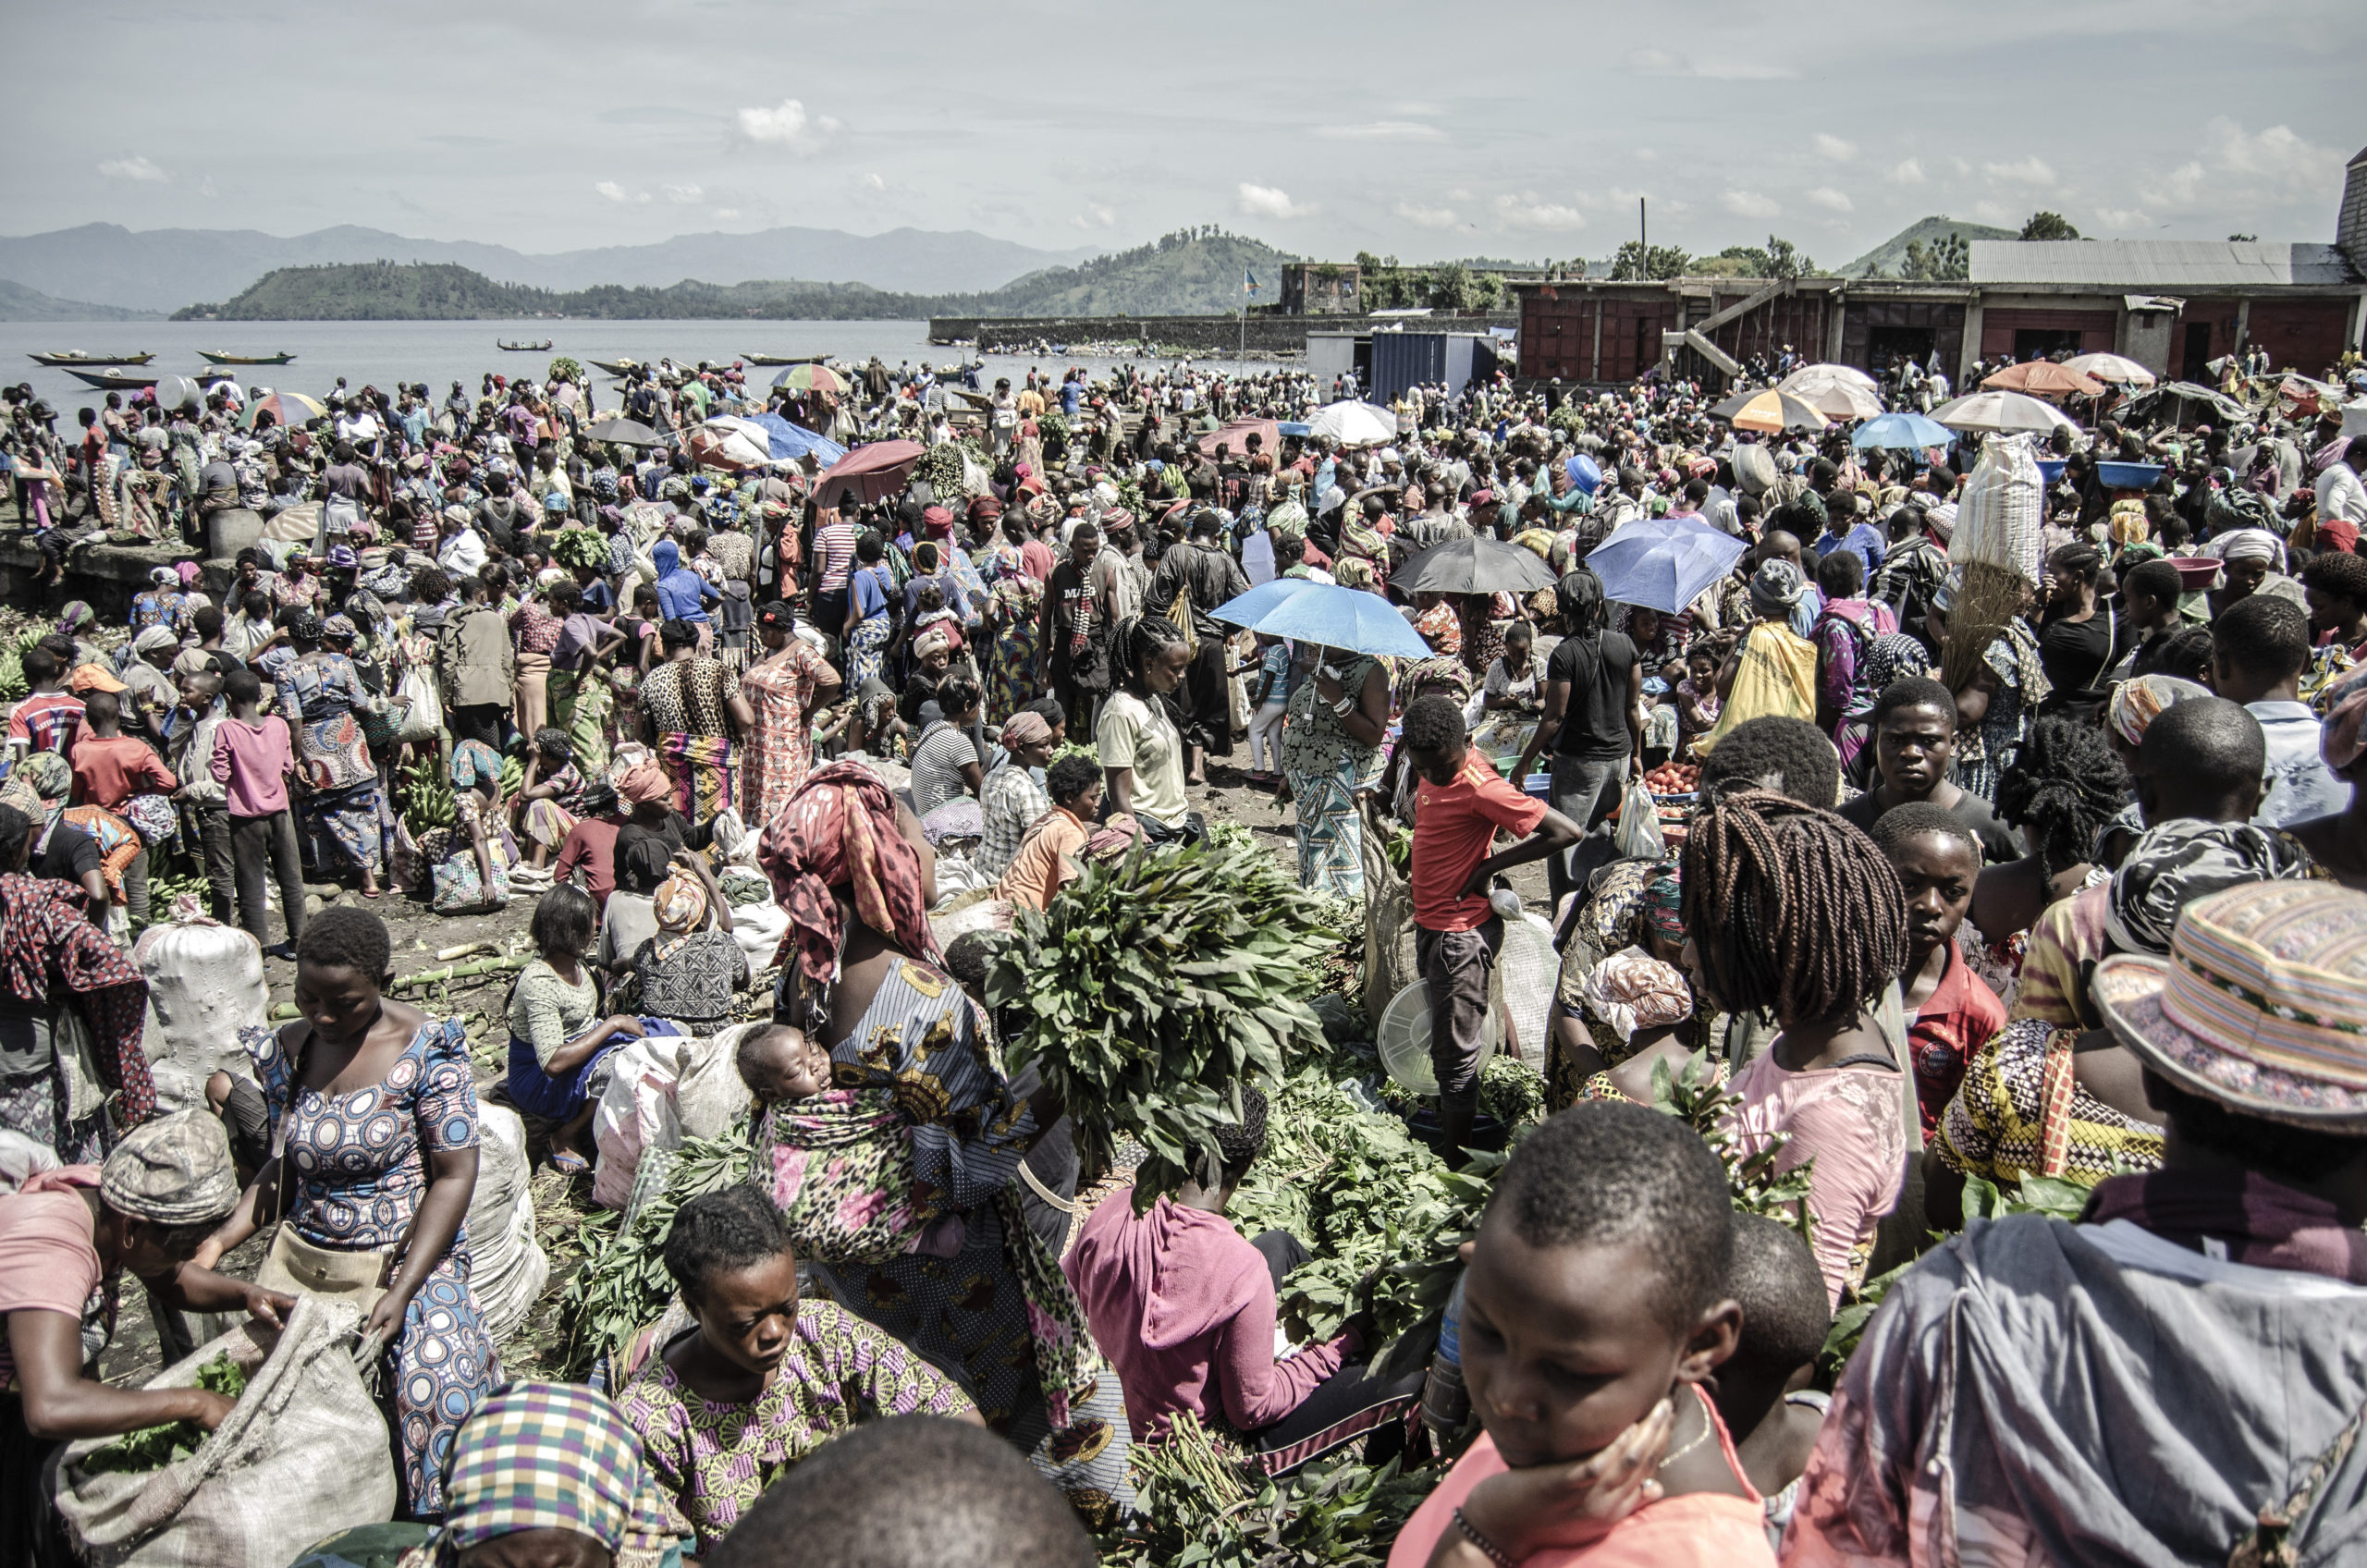 Vendors and shoppers at a market on the shores of Lake Kivu in Goma, eastern Democratic Republic of Congo, April 2, 2020. Many Congolese survive on their daily earnings and cannot afford to follow health advisories on maintaining social distance. Moses Sawasawa/Fondation Carmignac